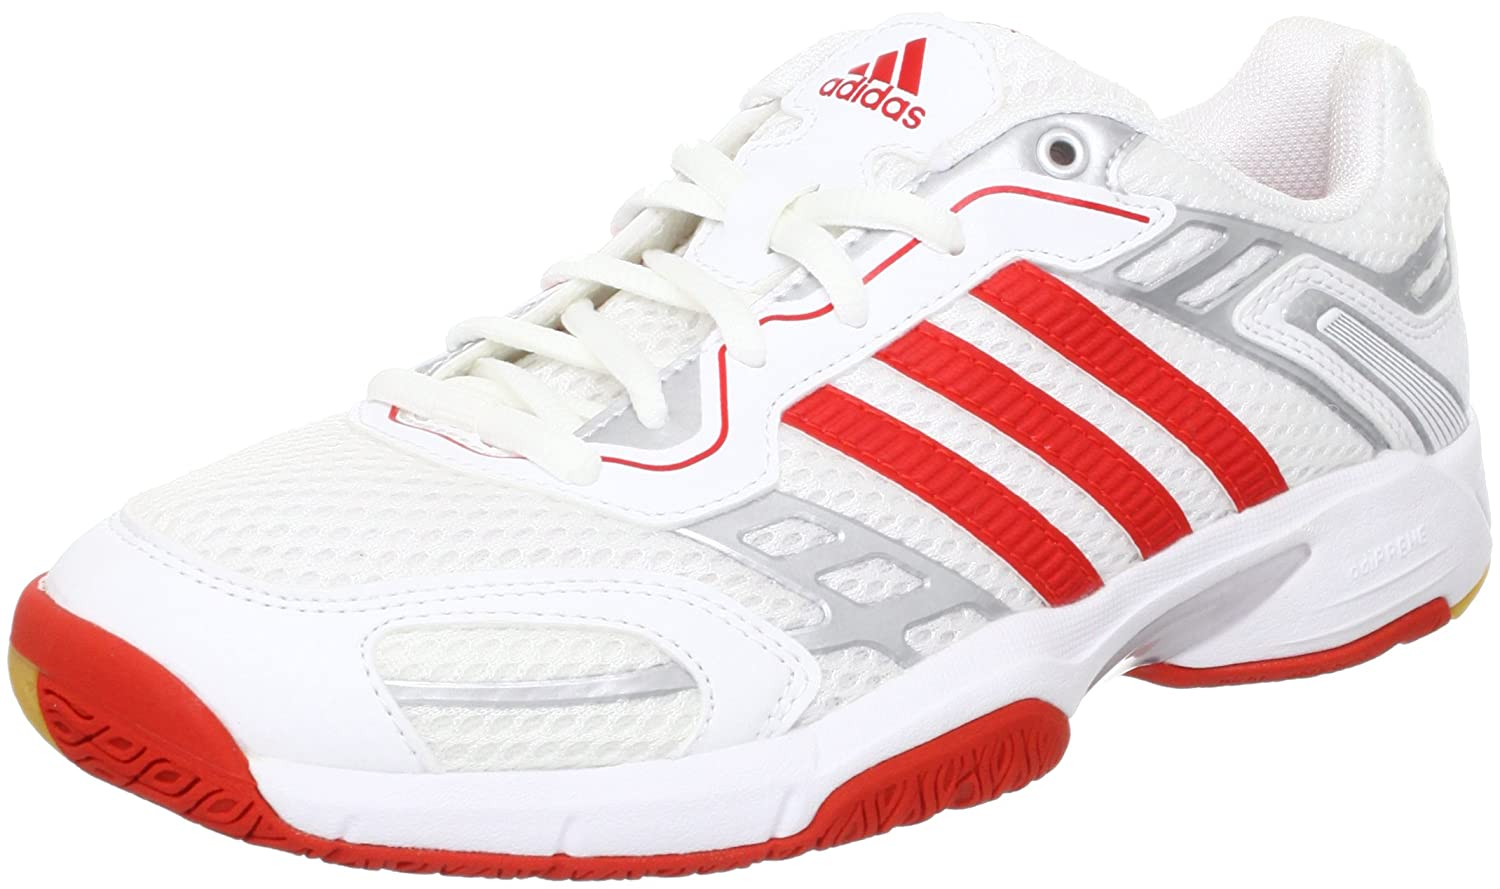 Adidas Opticourt Team W G60632 Damen Handballschuhe